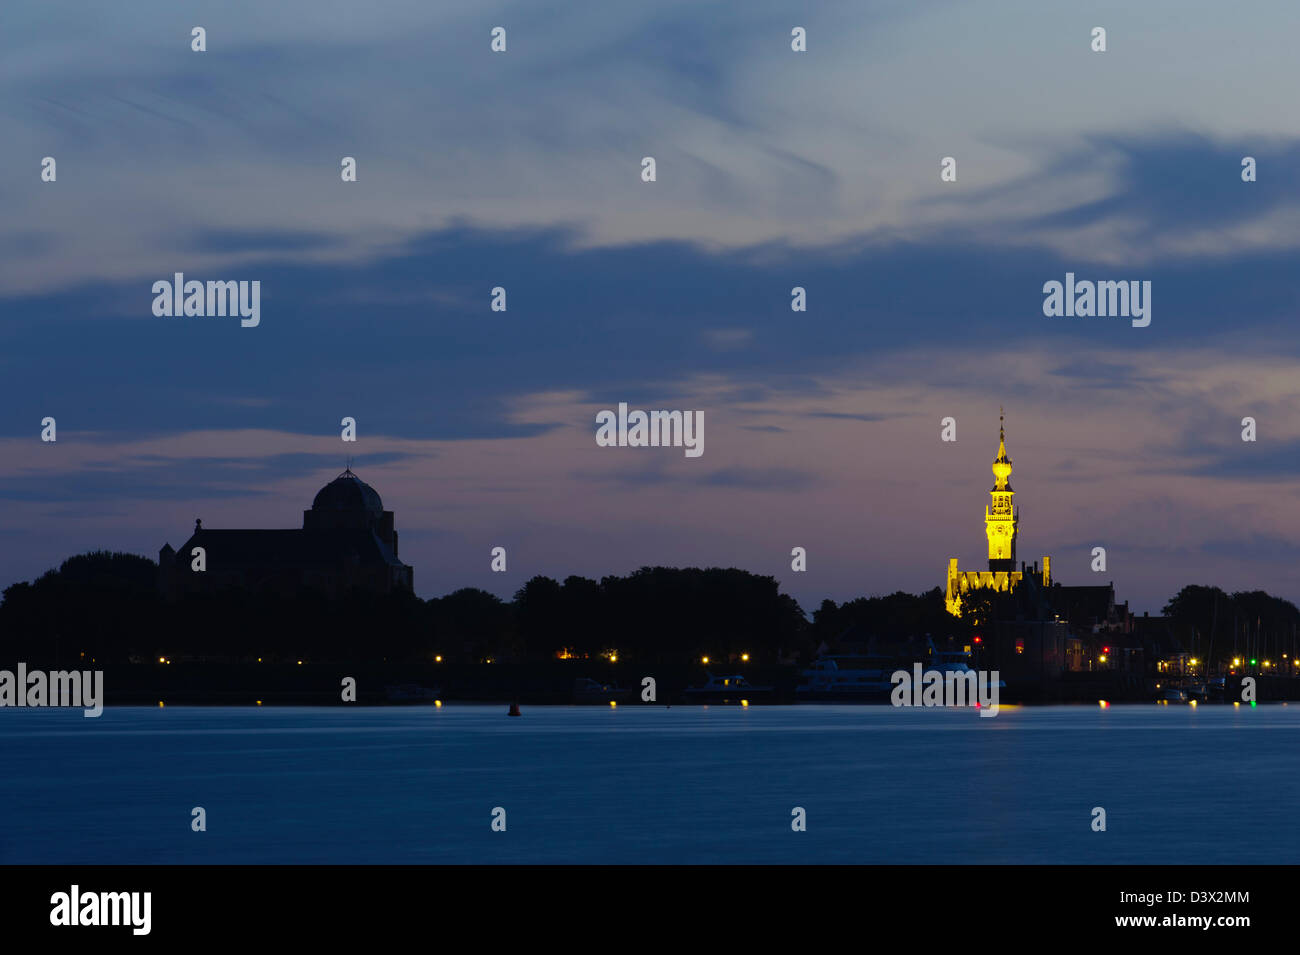 sunset at  the Veerse Meer. Veere  with illuminated Town Hall on the background. Walcheren, Zeeland. Netherlands. - Stock Image